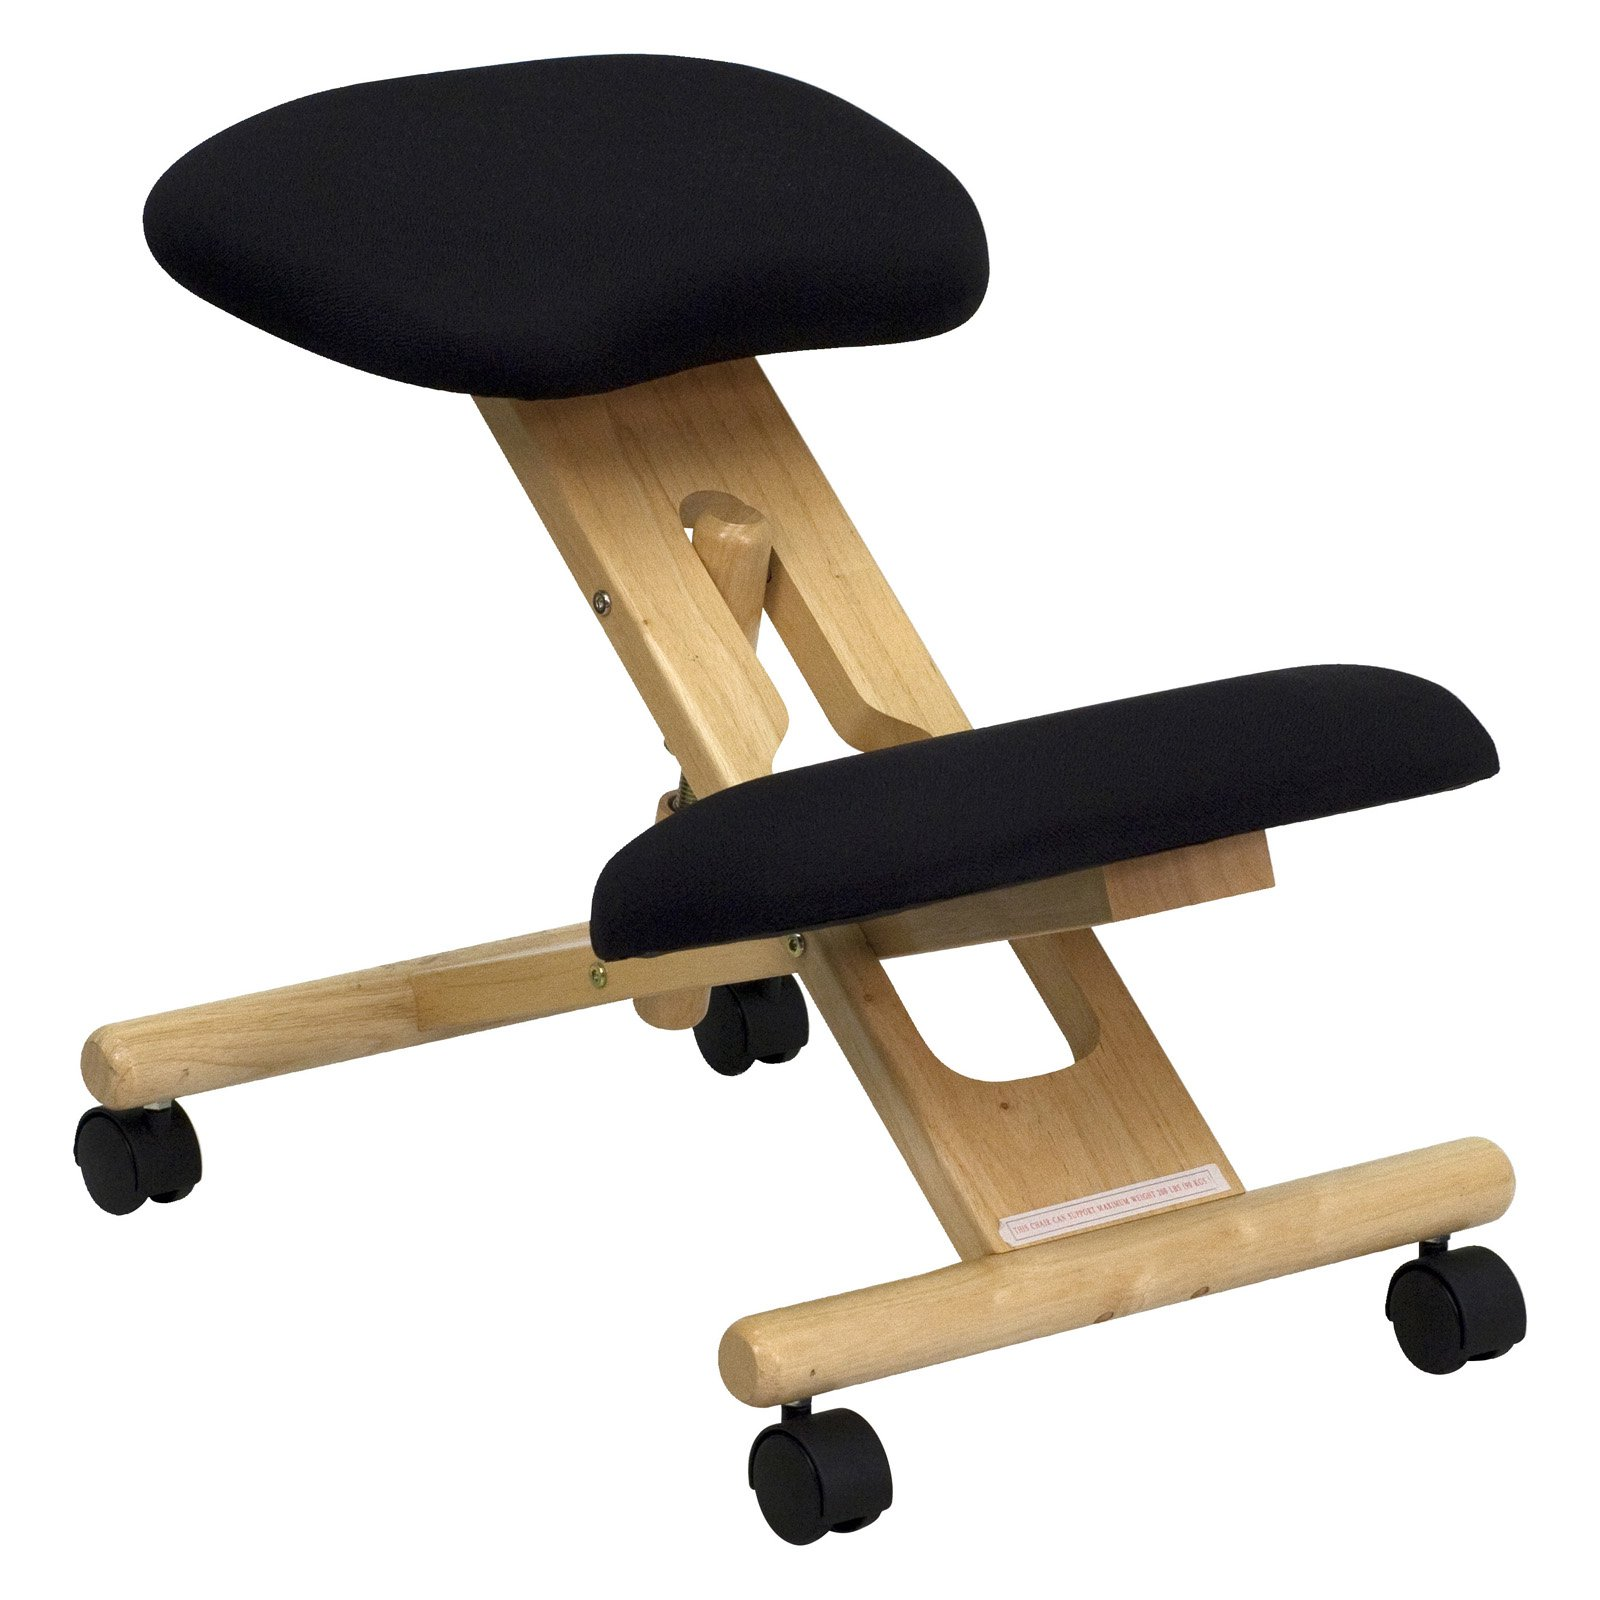 Wooden Ergonomic Kneeling Posture Office Chair, Black